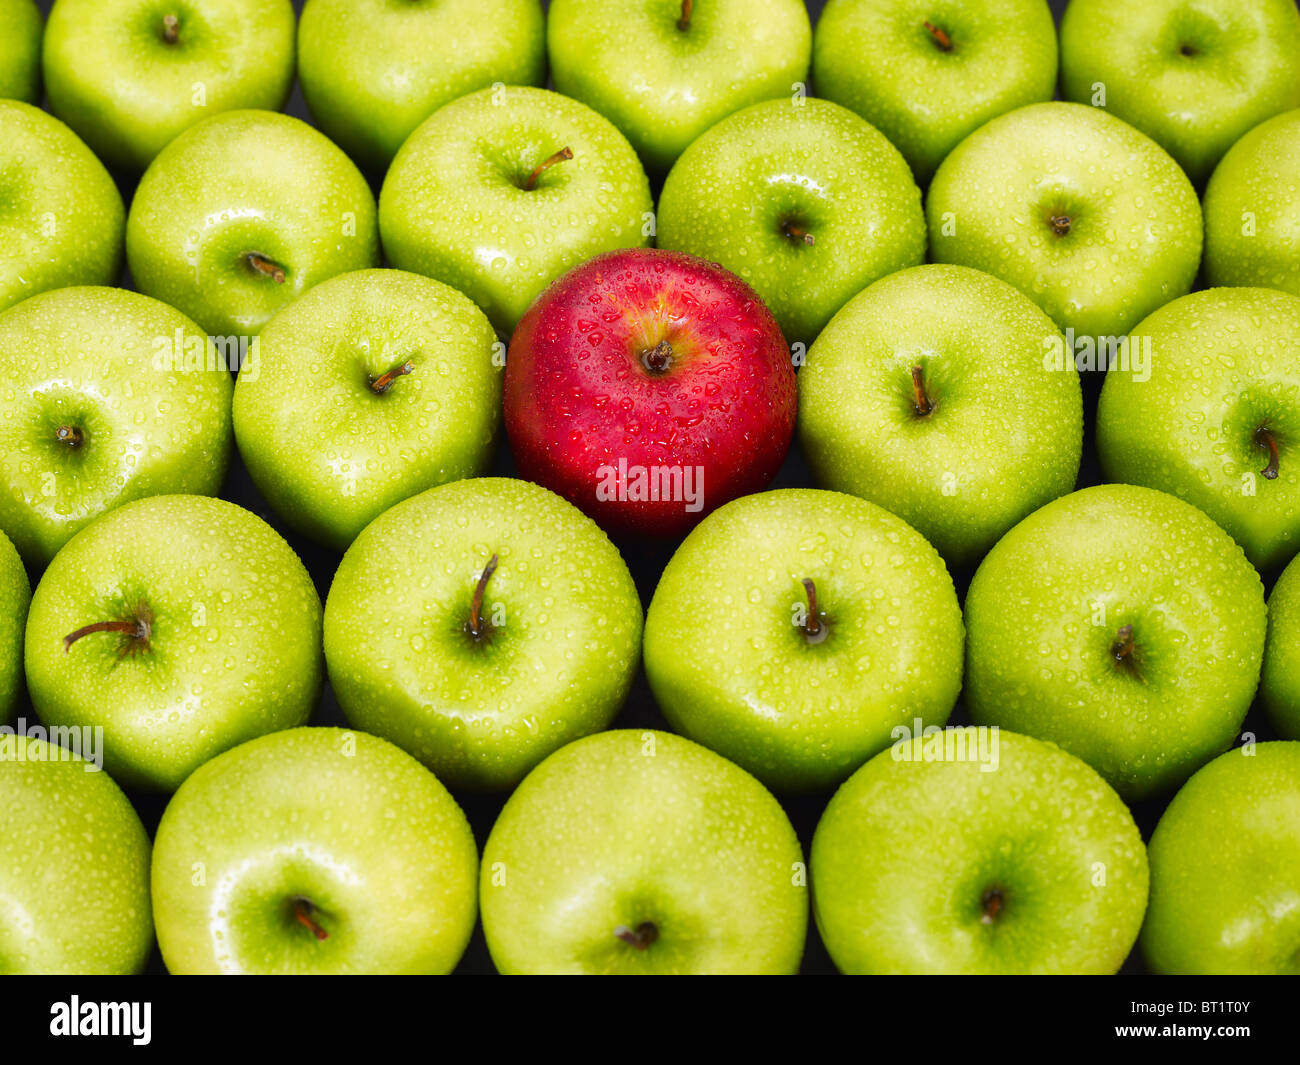 red apple standing out from bunch of green apples Stock Photo